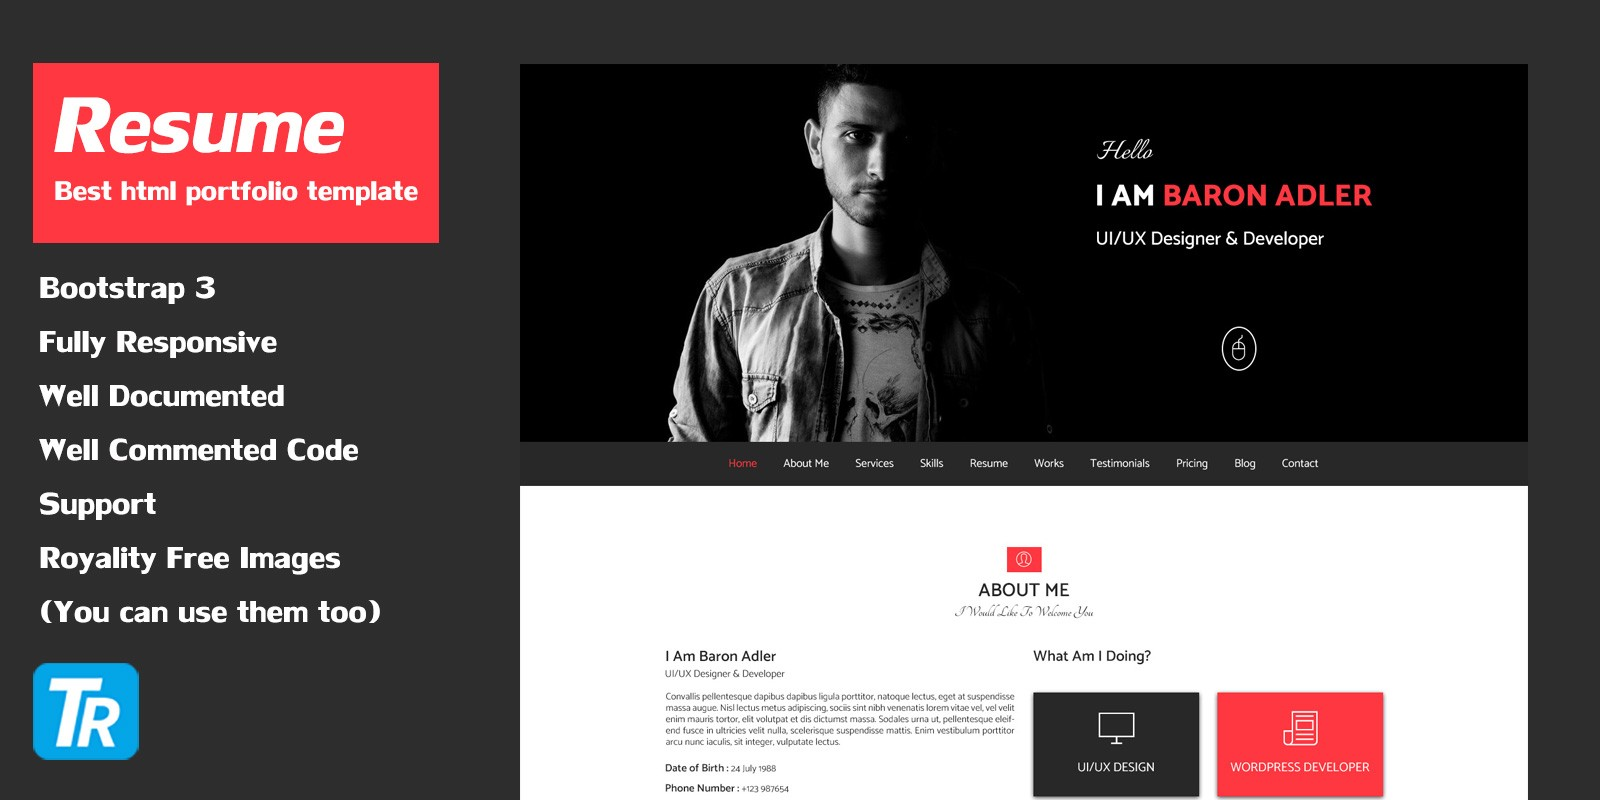 resume personal portfolio web template - Resume Web Template